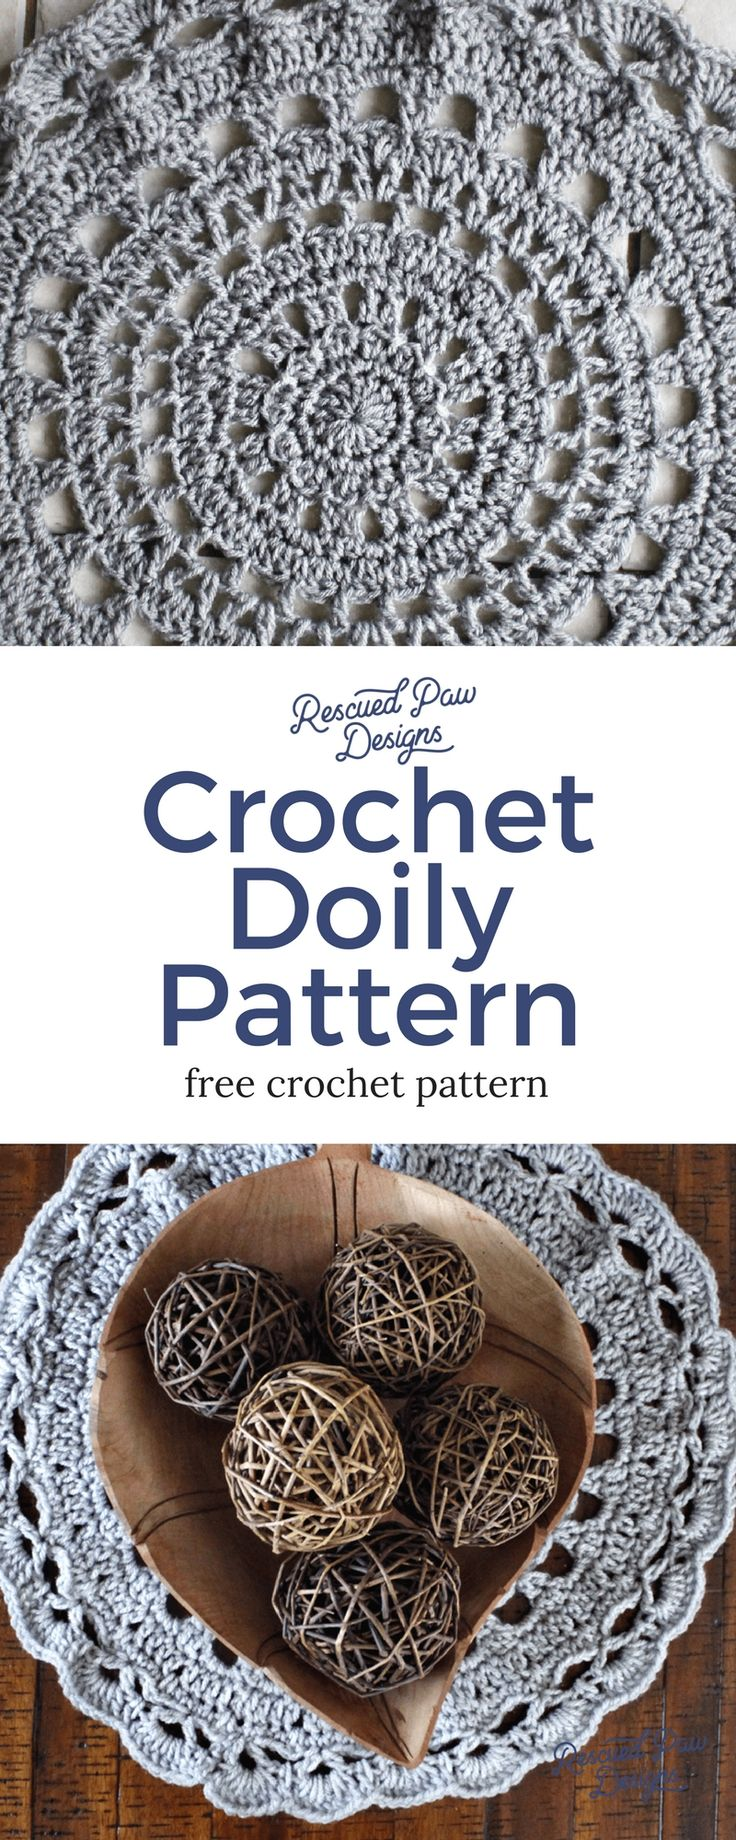 Best 25 free crochet doily patterns ideas on pinterest crochet doily crochet pattern rescued paw designs bankloansurffo Image collections